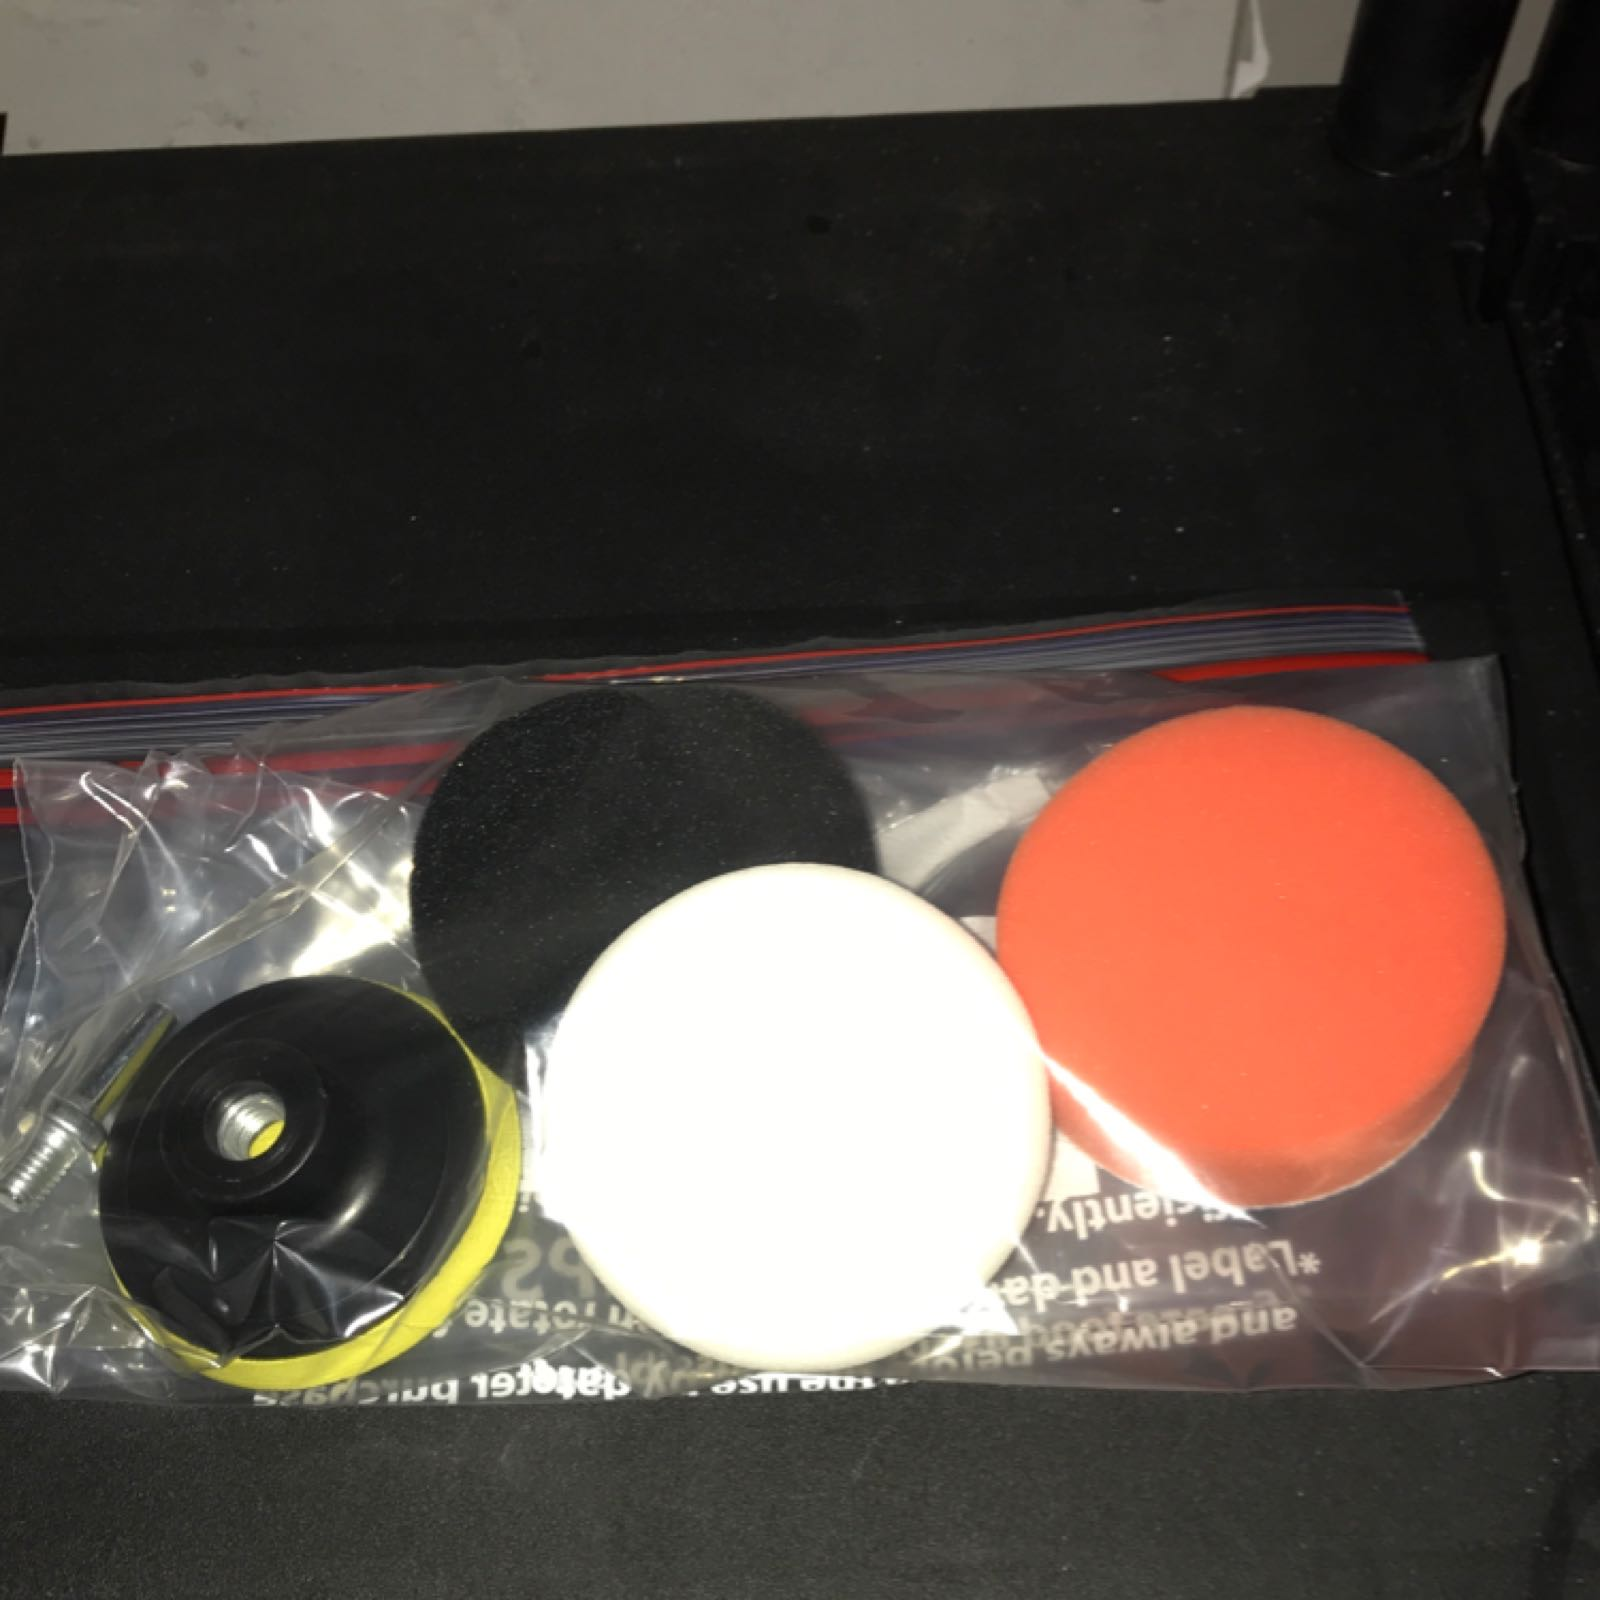 h. Backing pad 3 inch with drill adapter and 3 pads